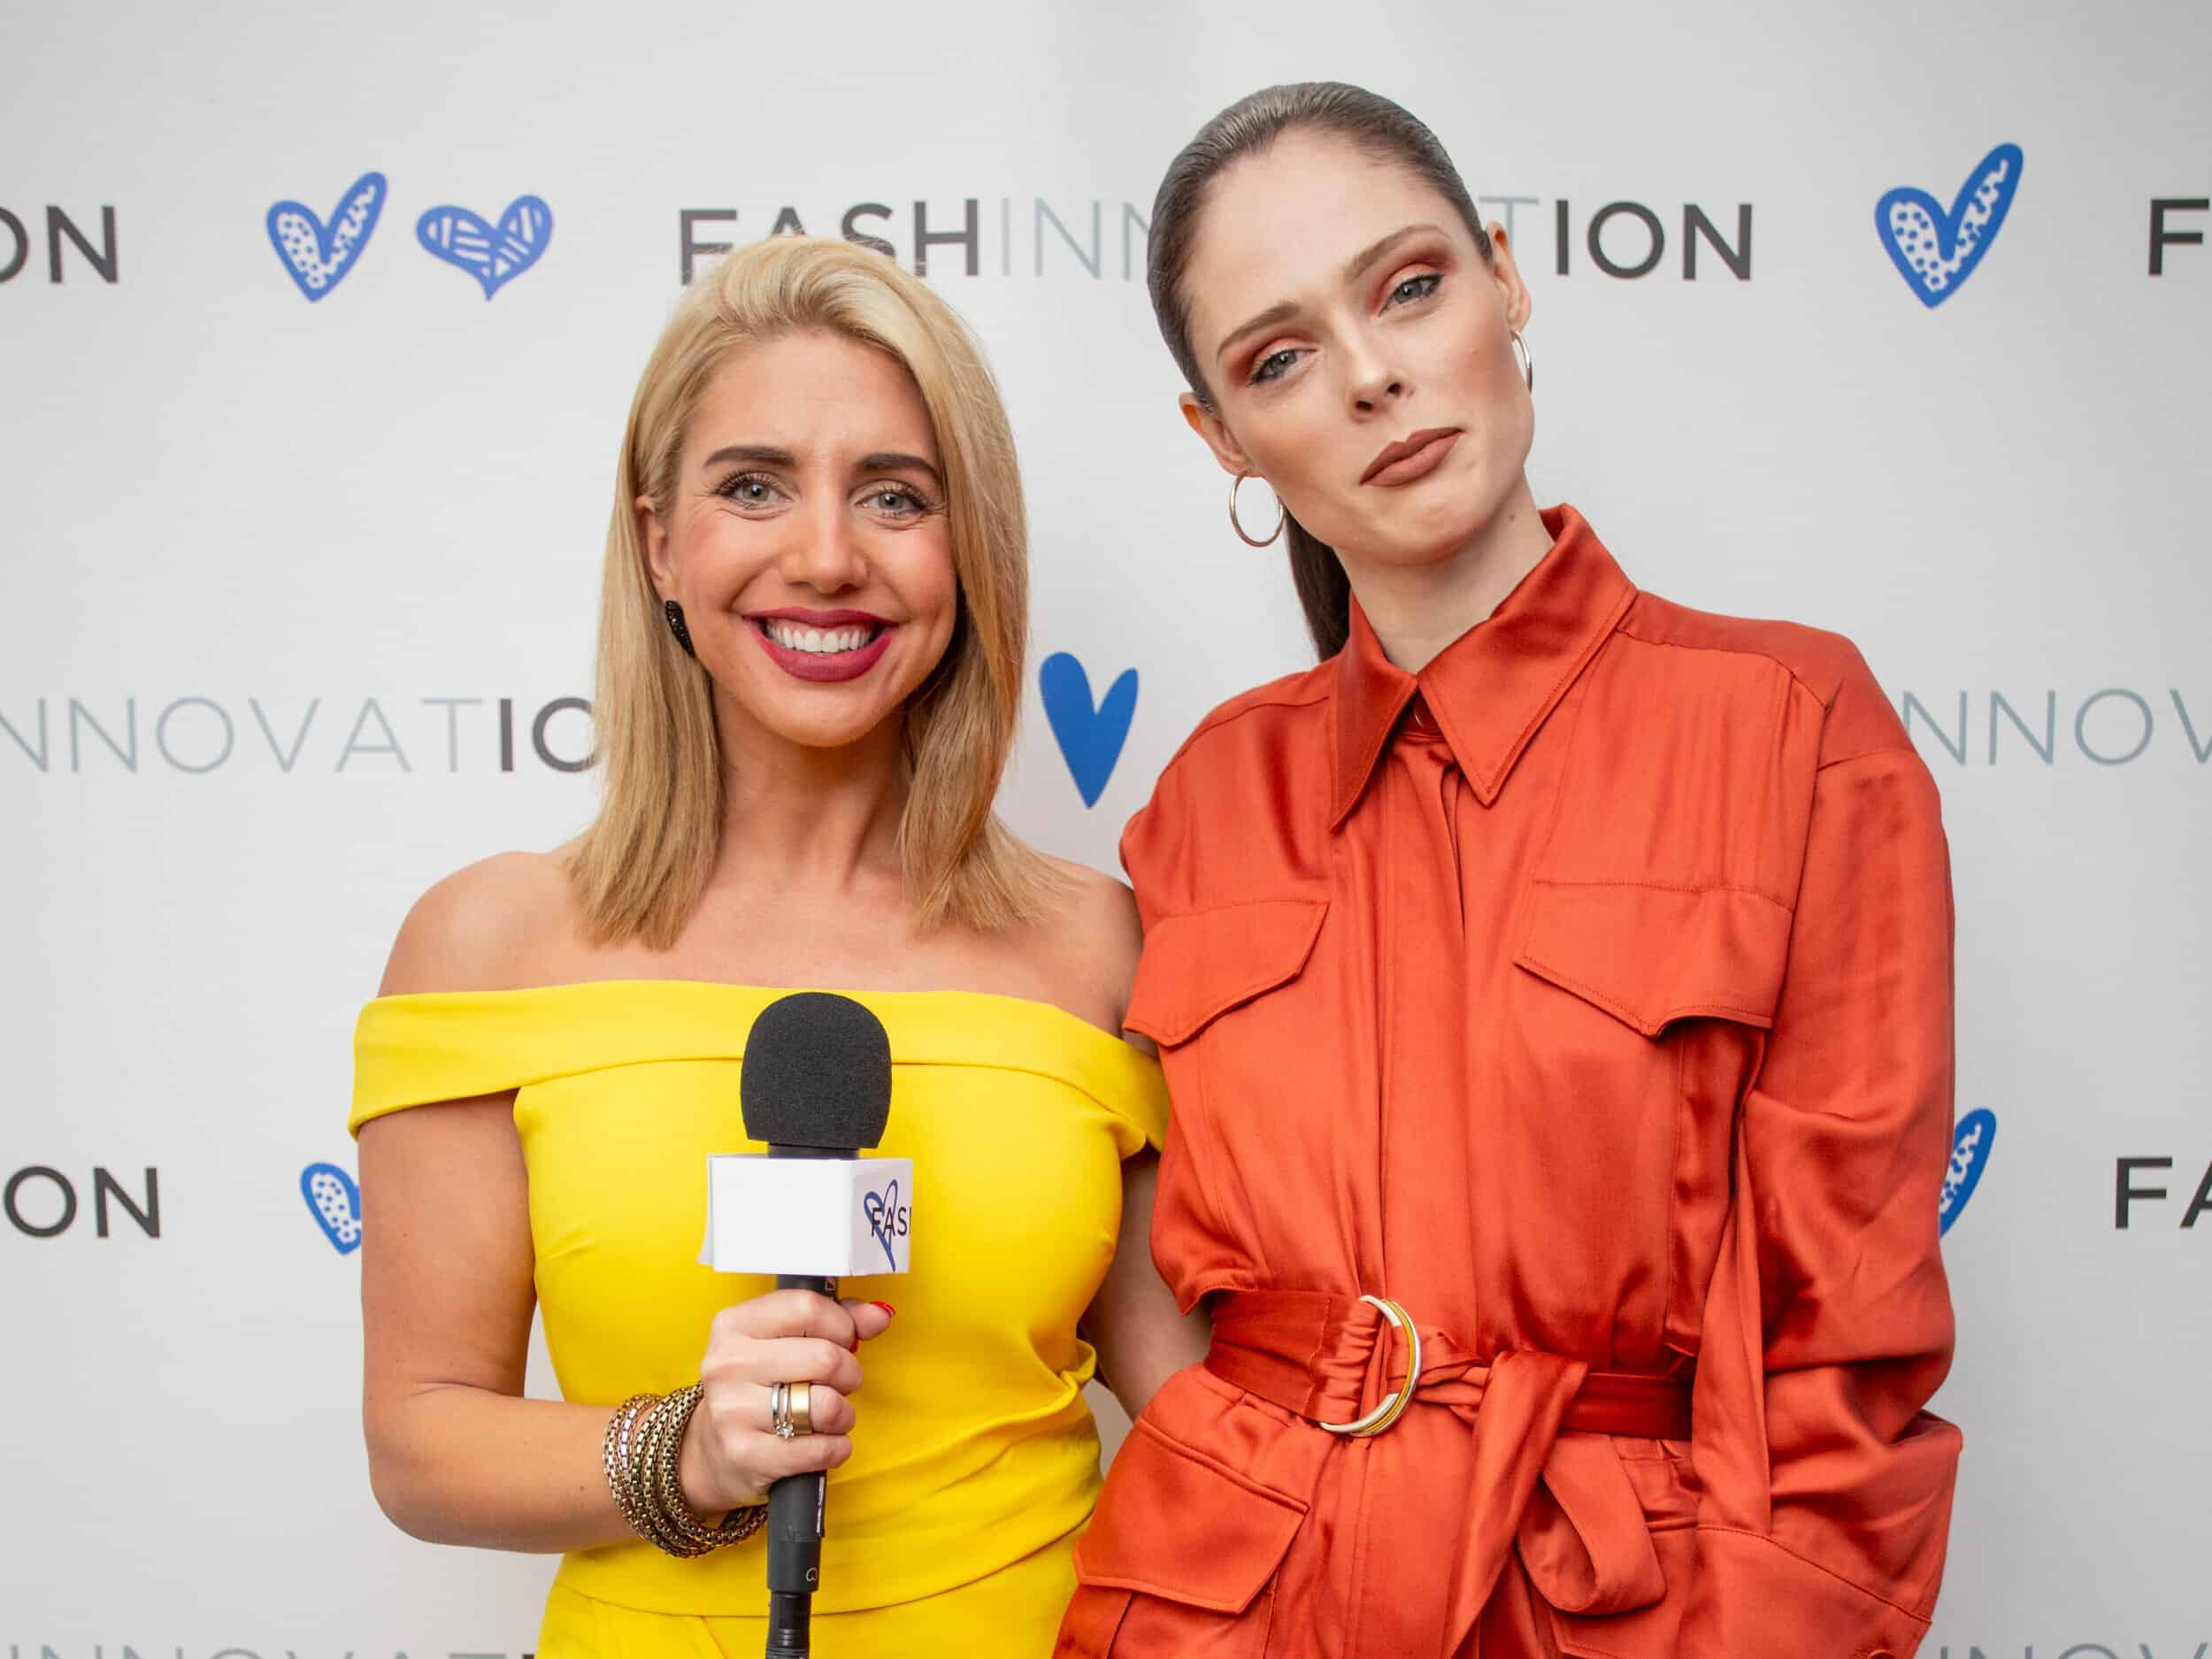 Fashinnovation: Creating Community with the Consumer